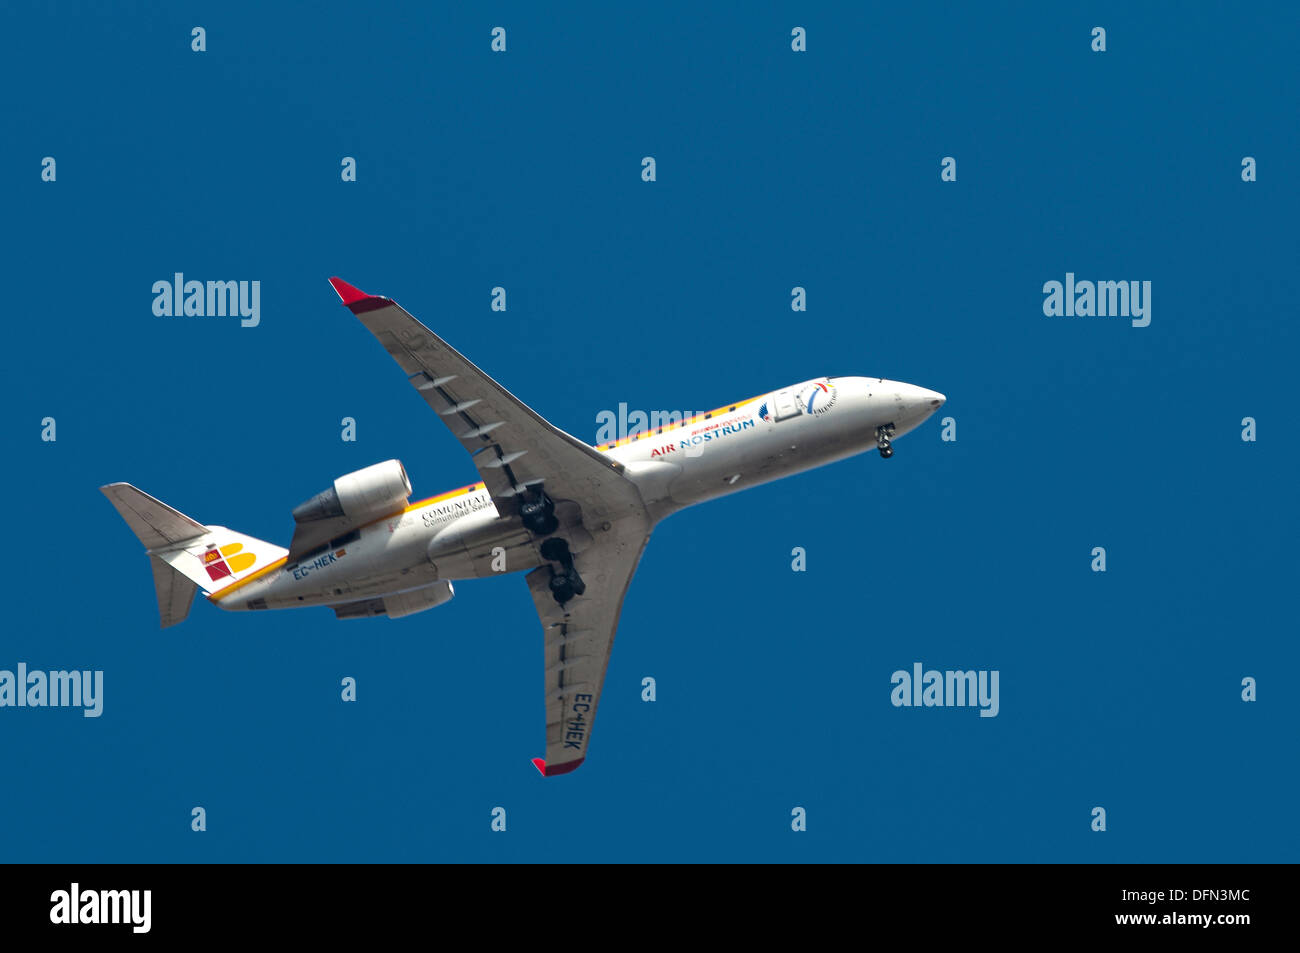 Commercial airliner on a blue background - Stock Image